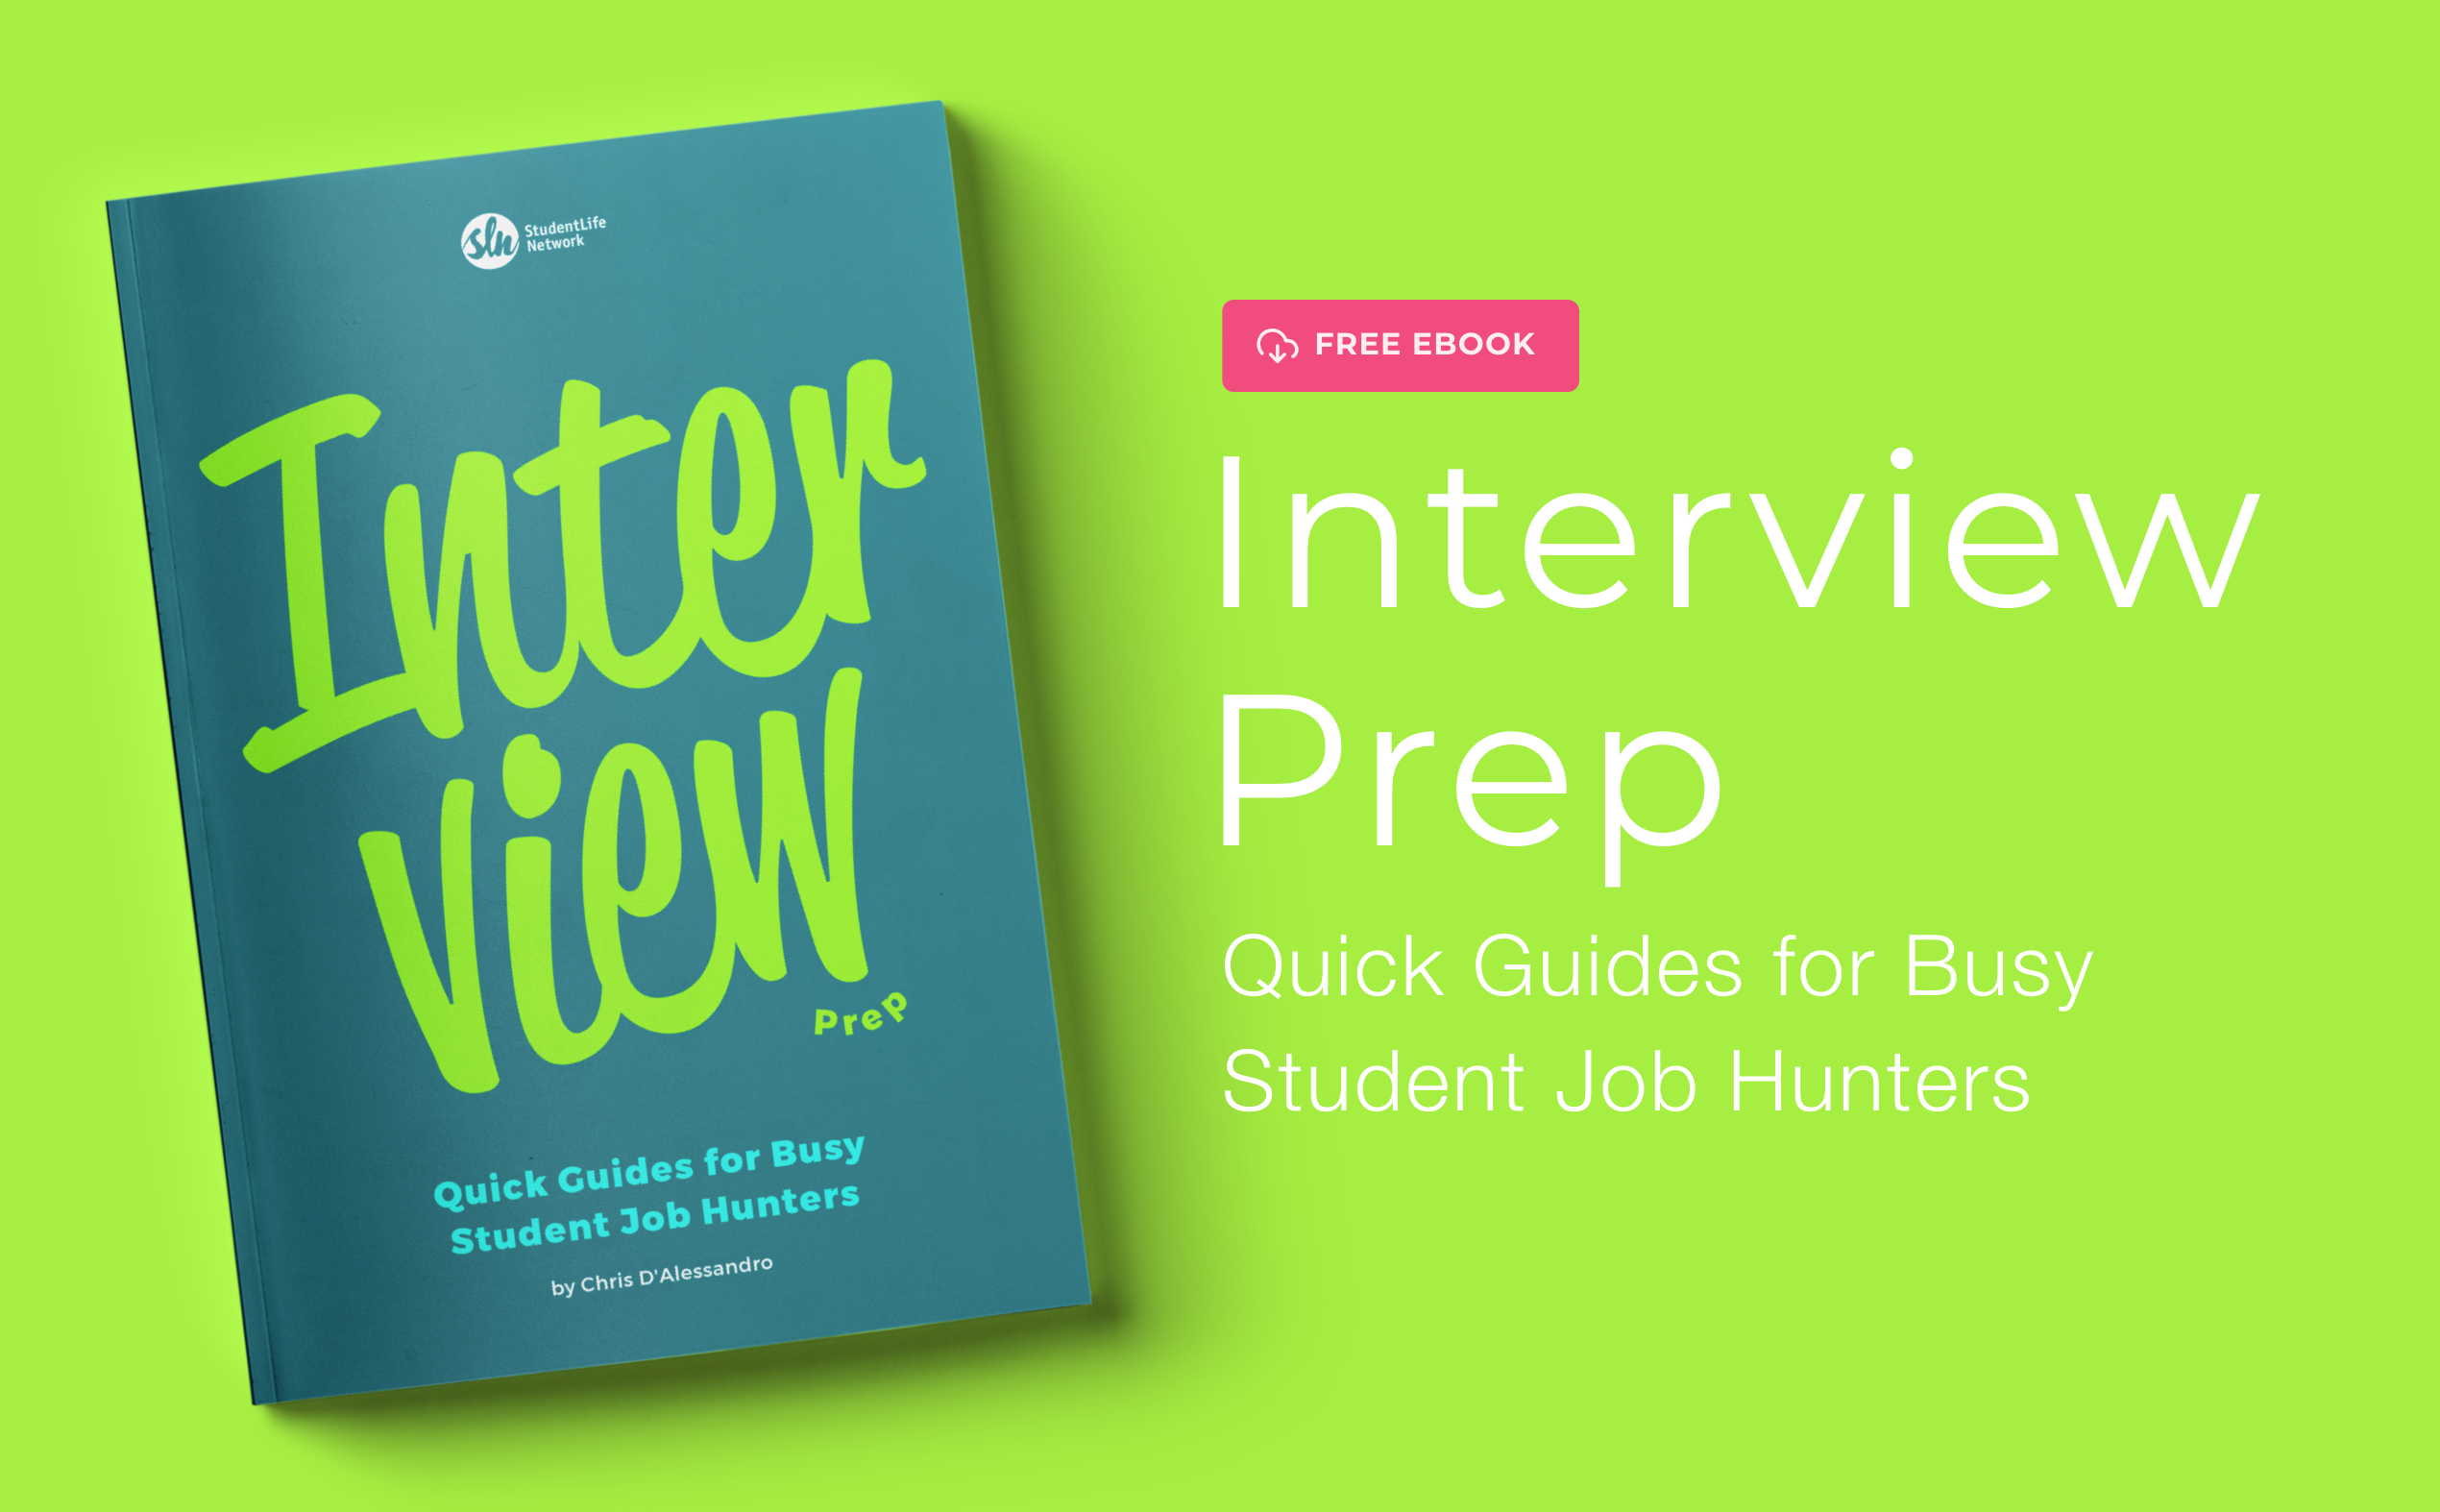 Our Free eBook Helps You Prepare For Your Job Interview